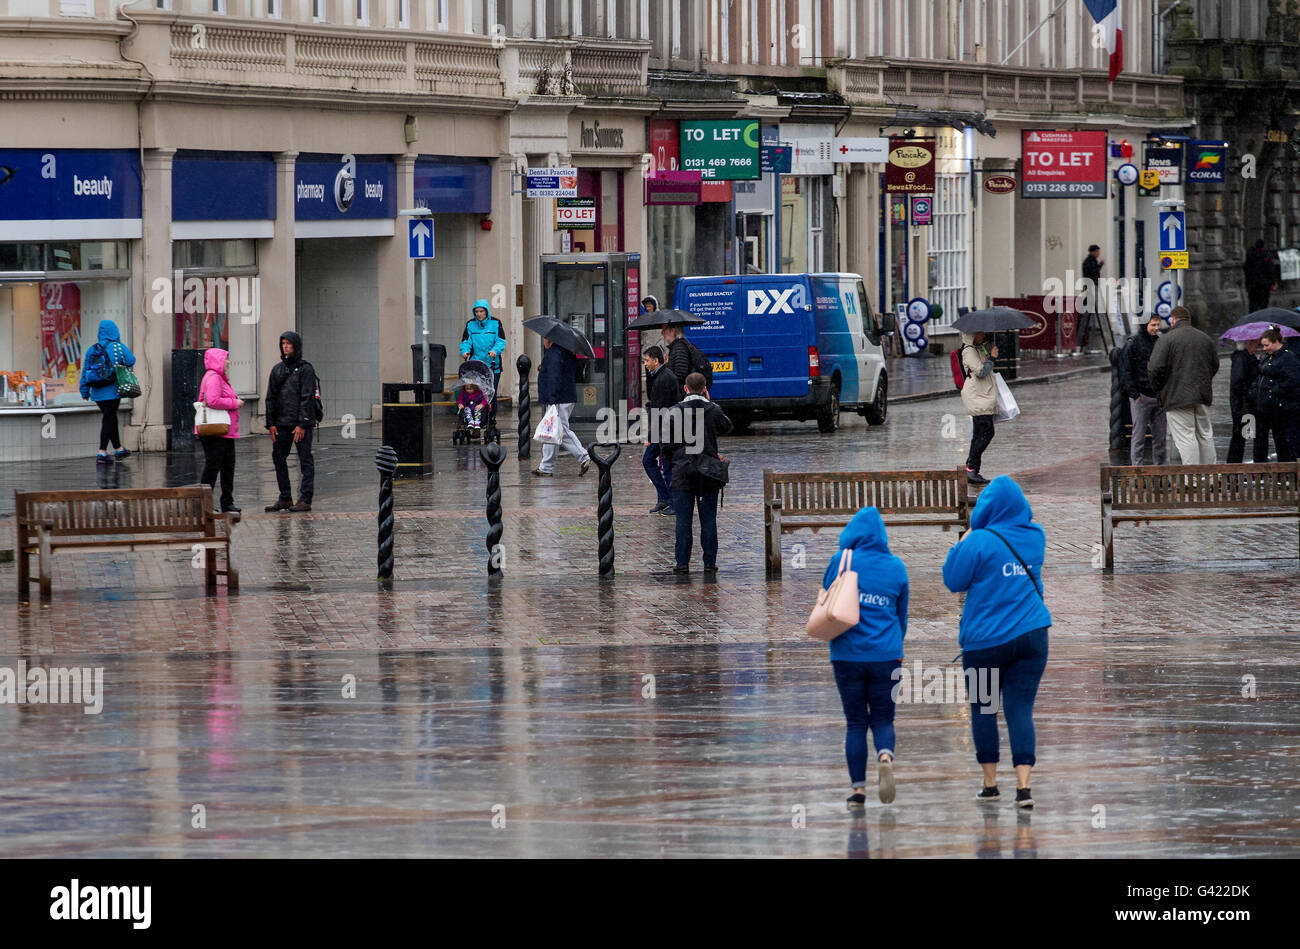 Dundee, Tayside, Scotland, UK. June 17th 2016. UK Weather: Daily life continues despite a week of constant rain Stock Photo